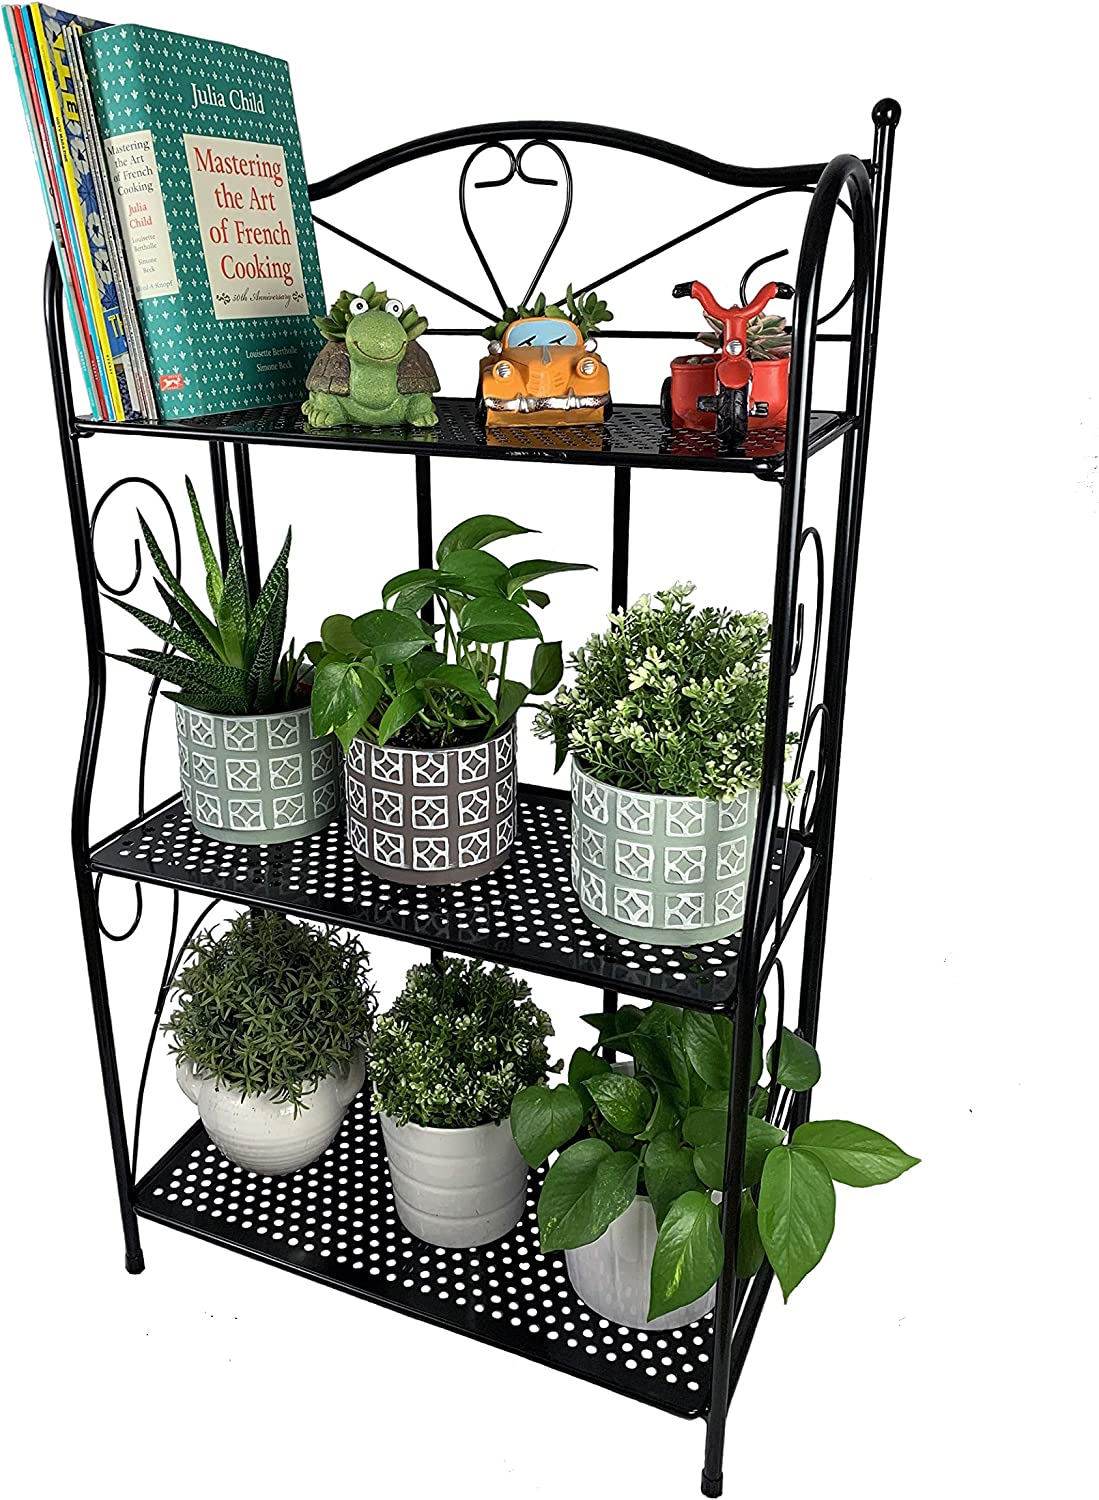 Cocoyard Tiered Folding Metal Plant Stand 3 Tier Heavy Duty Indoor and Outdoor Flower Display Rack, Home Storage Organizer Shelf. No Assembly Required